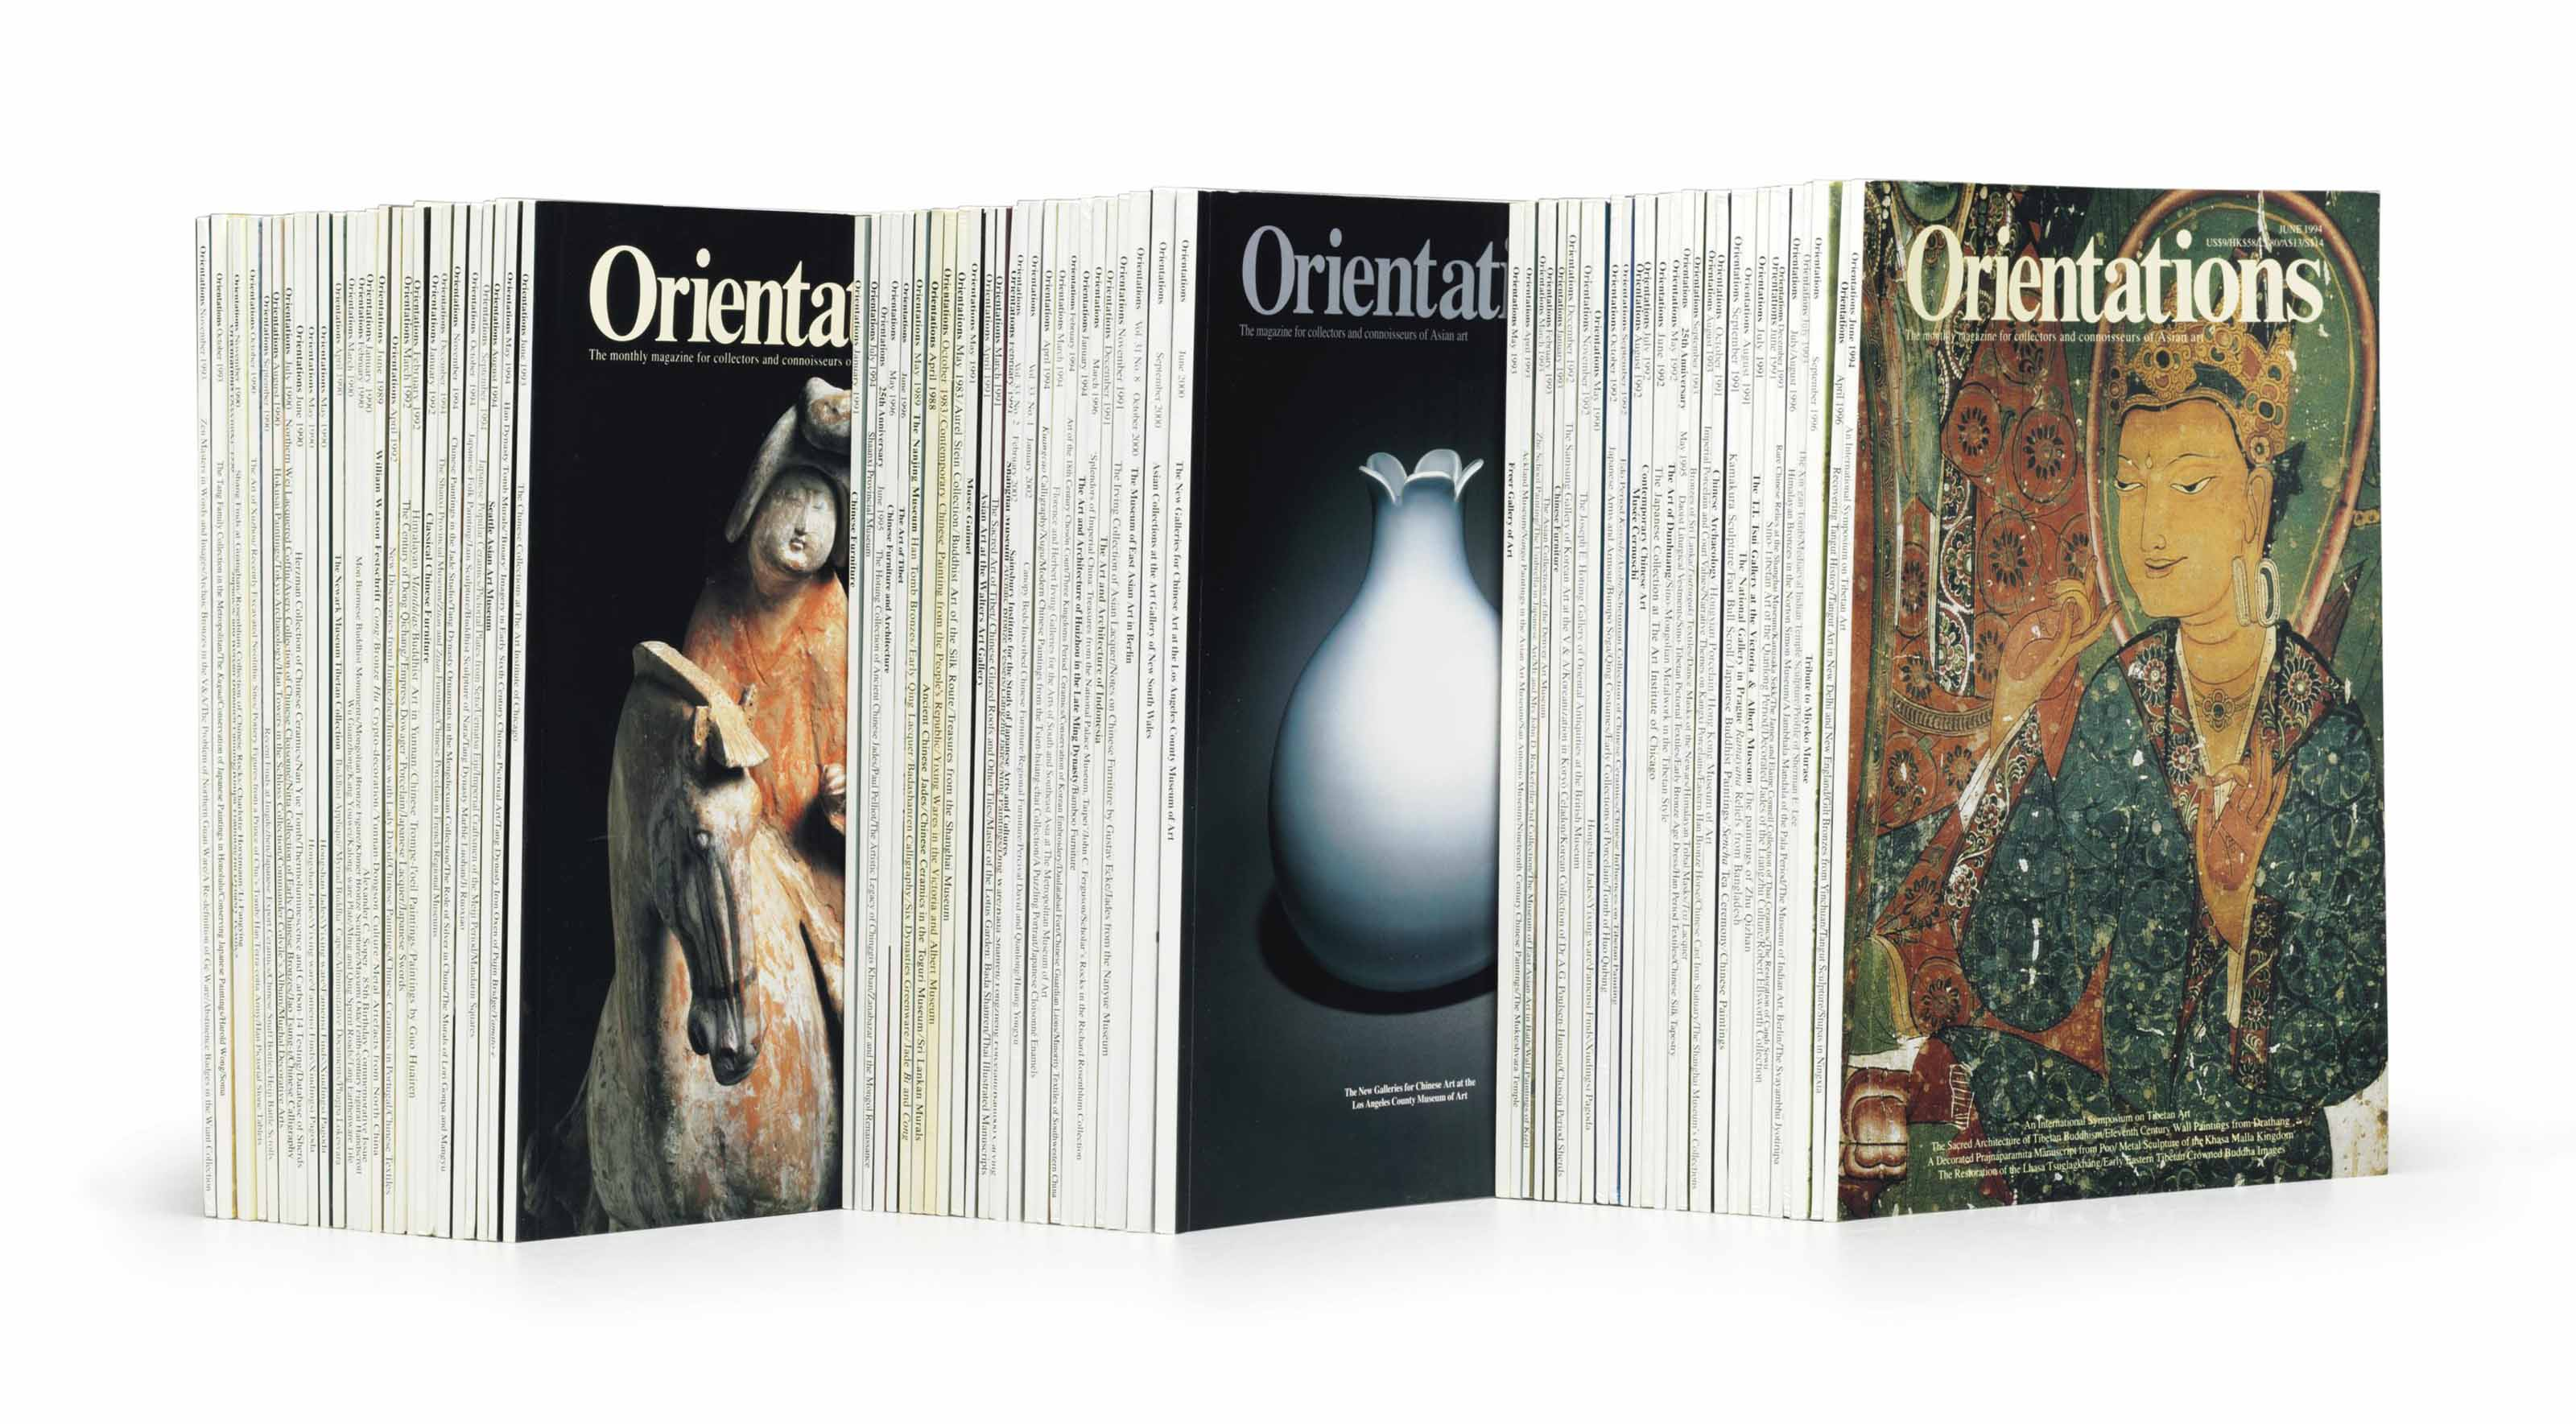 A GROUP OF ORIENTATIONS MAGAZI